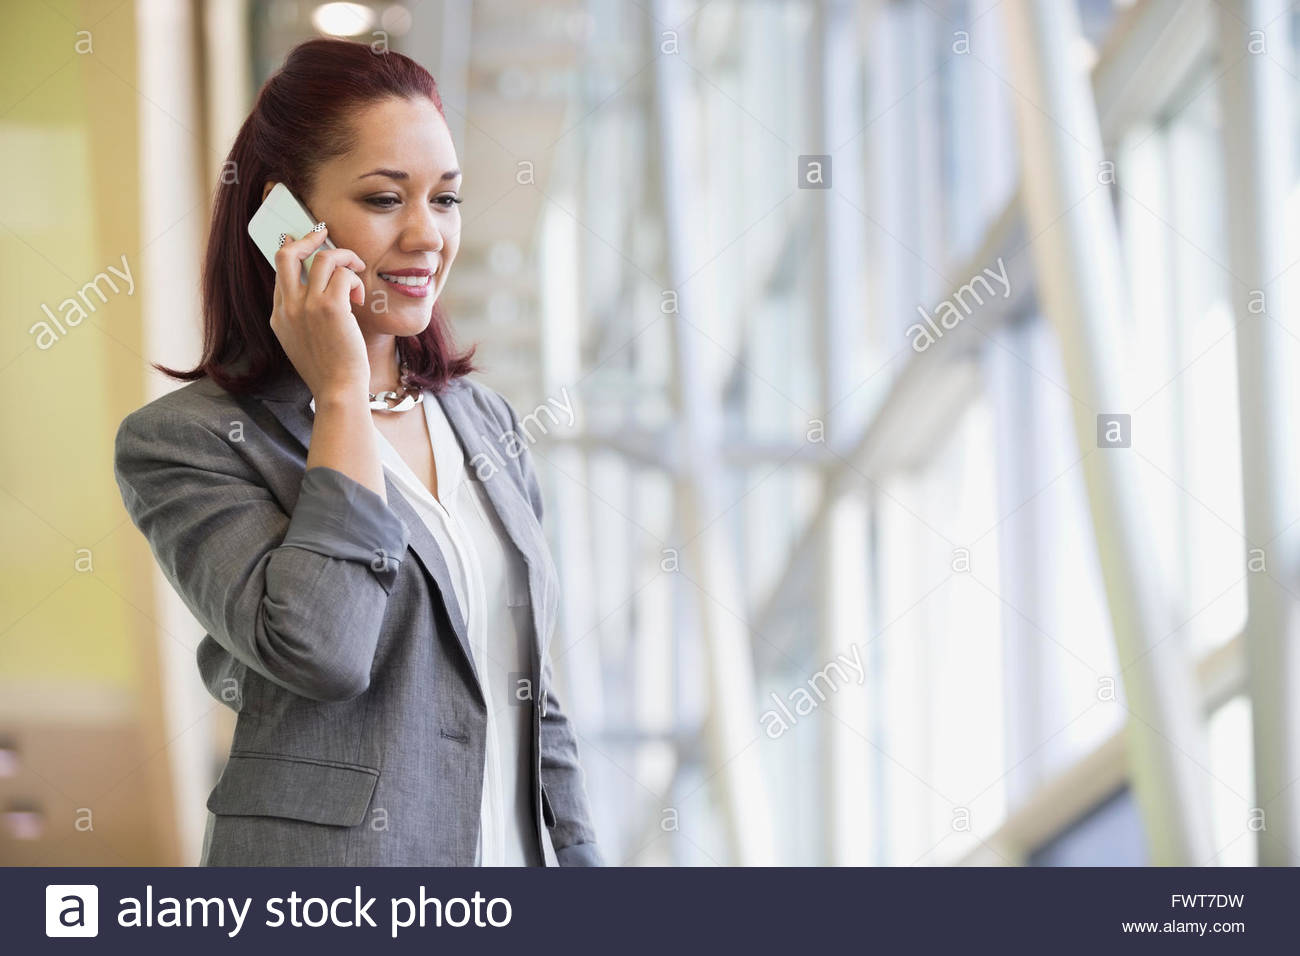 Young businesswoman answering mobile phone in office - Stock Image